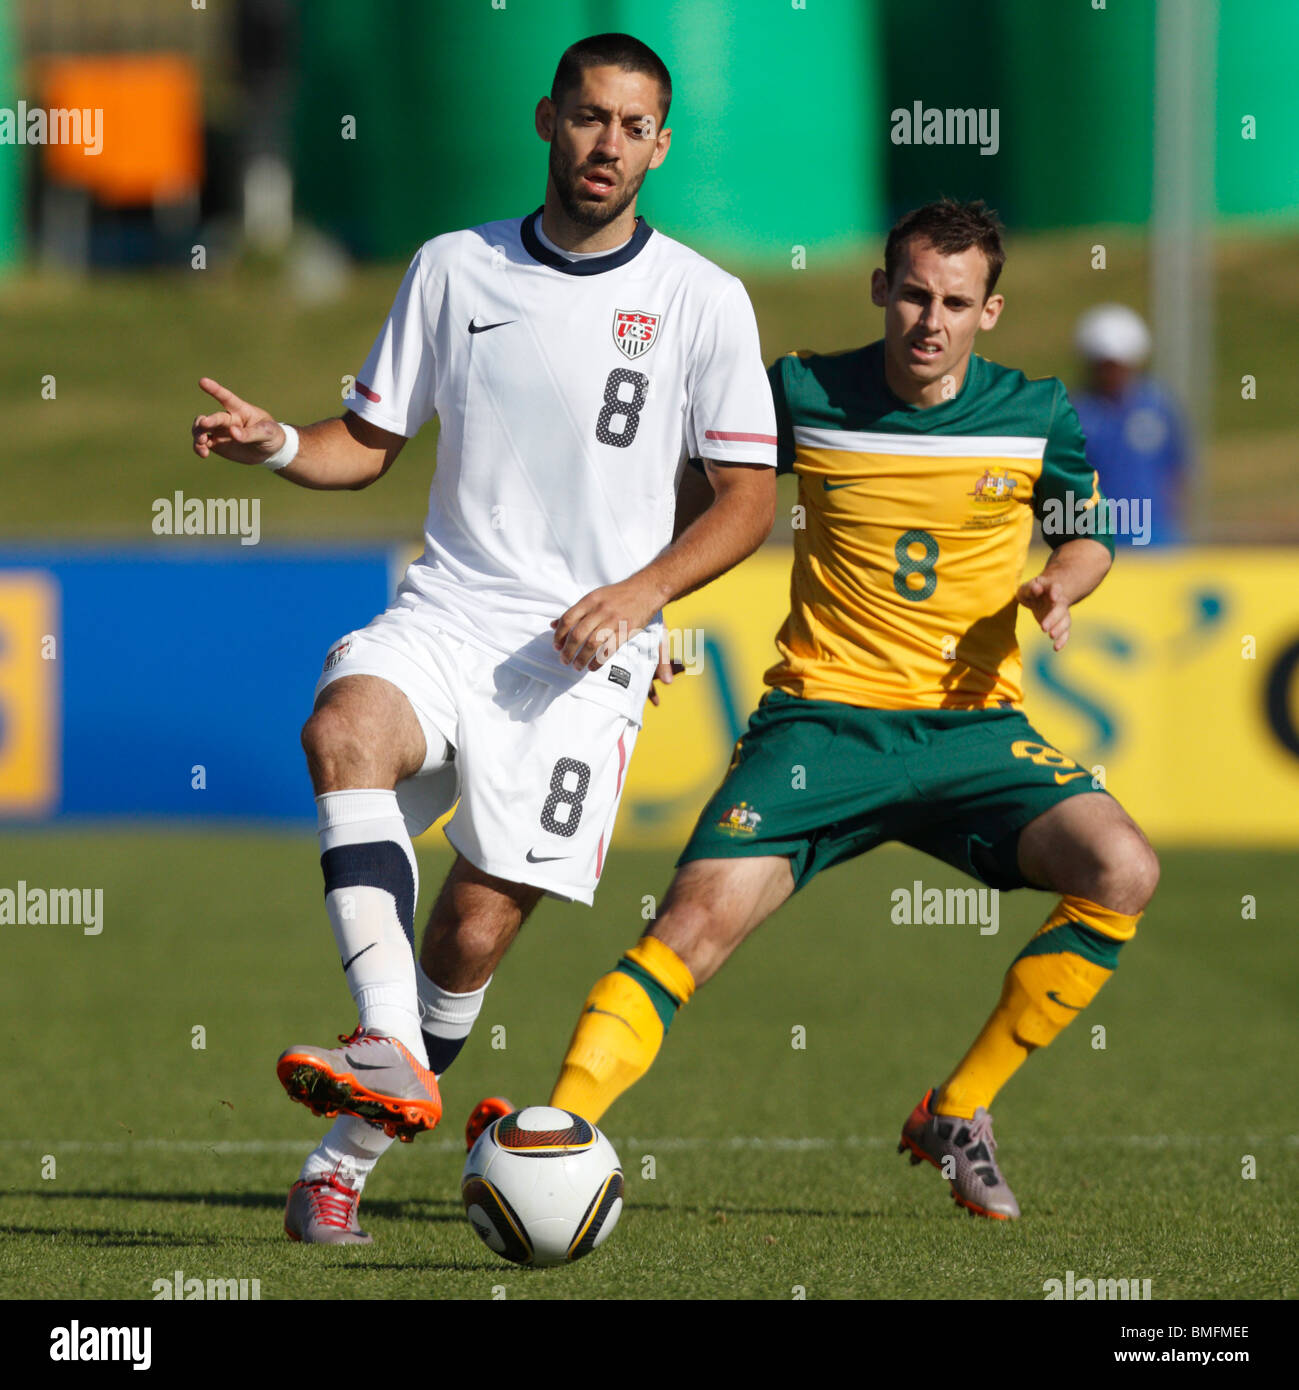 Clint Dempsey of the USA passes the ball against Luke Wilkshire of Australia  during a friendly ahead of the 2010 - Stock Image